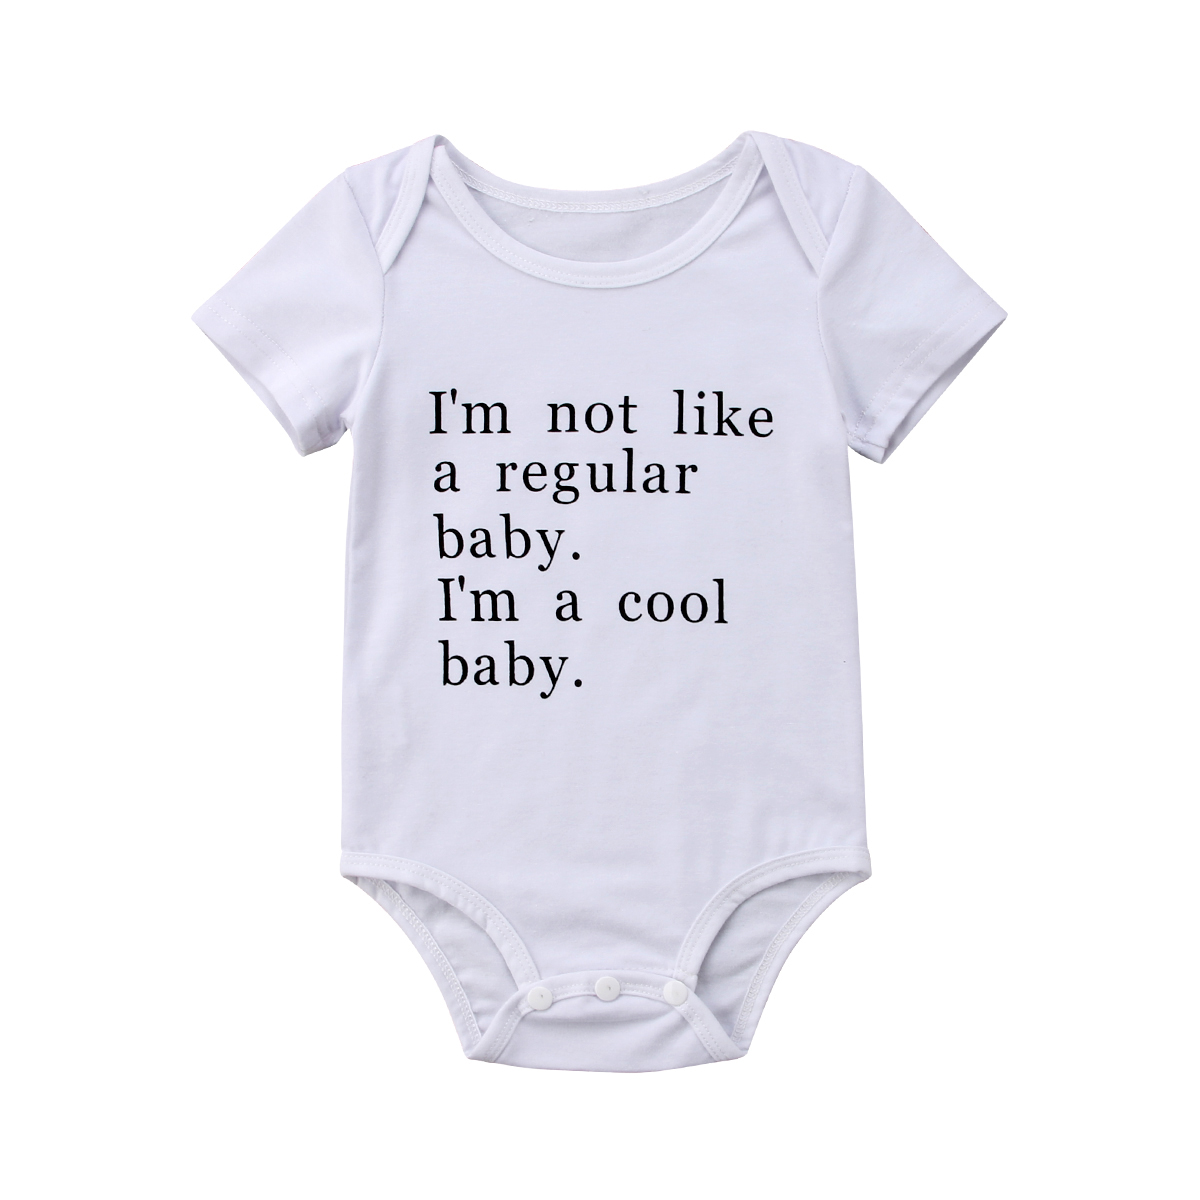 I'm a cool baby Letter Print Newborn Baby Boys Girls Short Sleeves Romper Cotton White Jumpsuit for infant Baby 2018 New